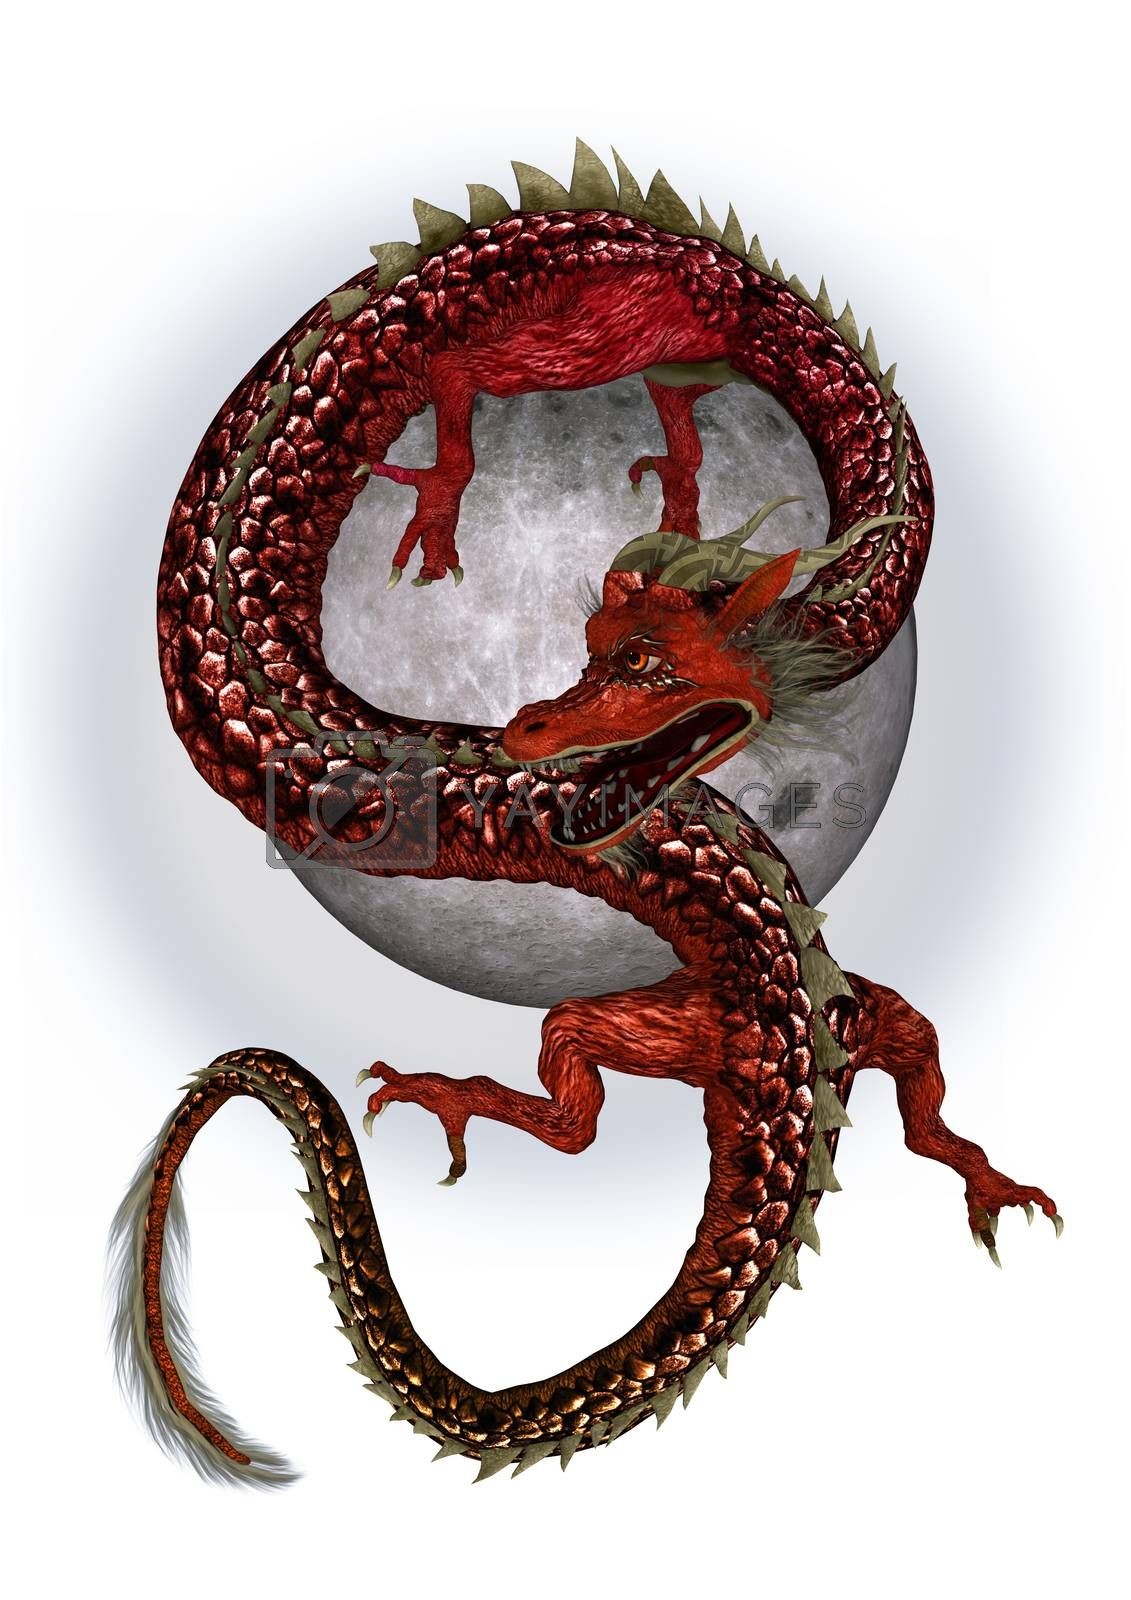 Royalty free image of Red Eastern Dragon by Vac